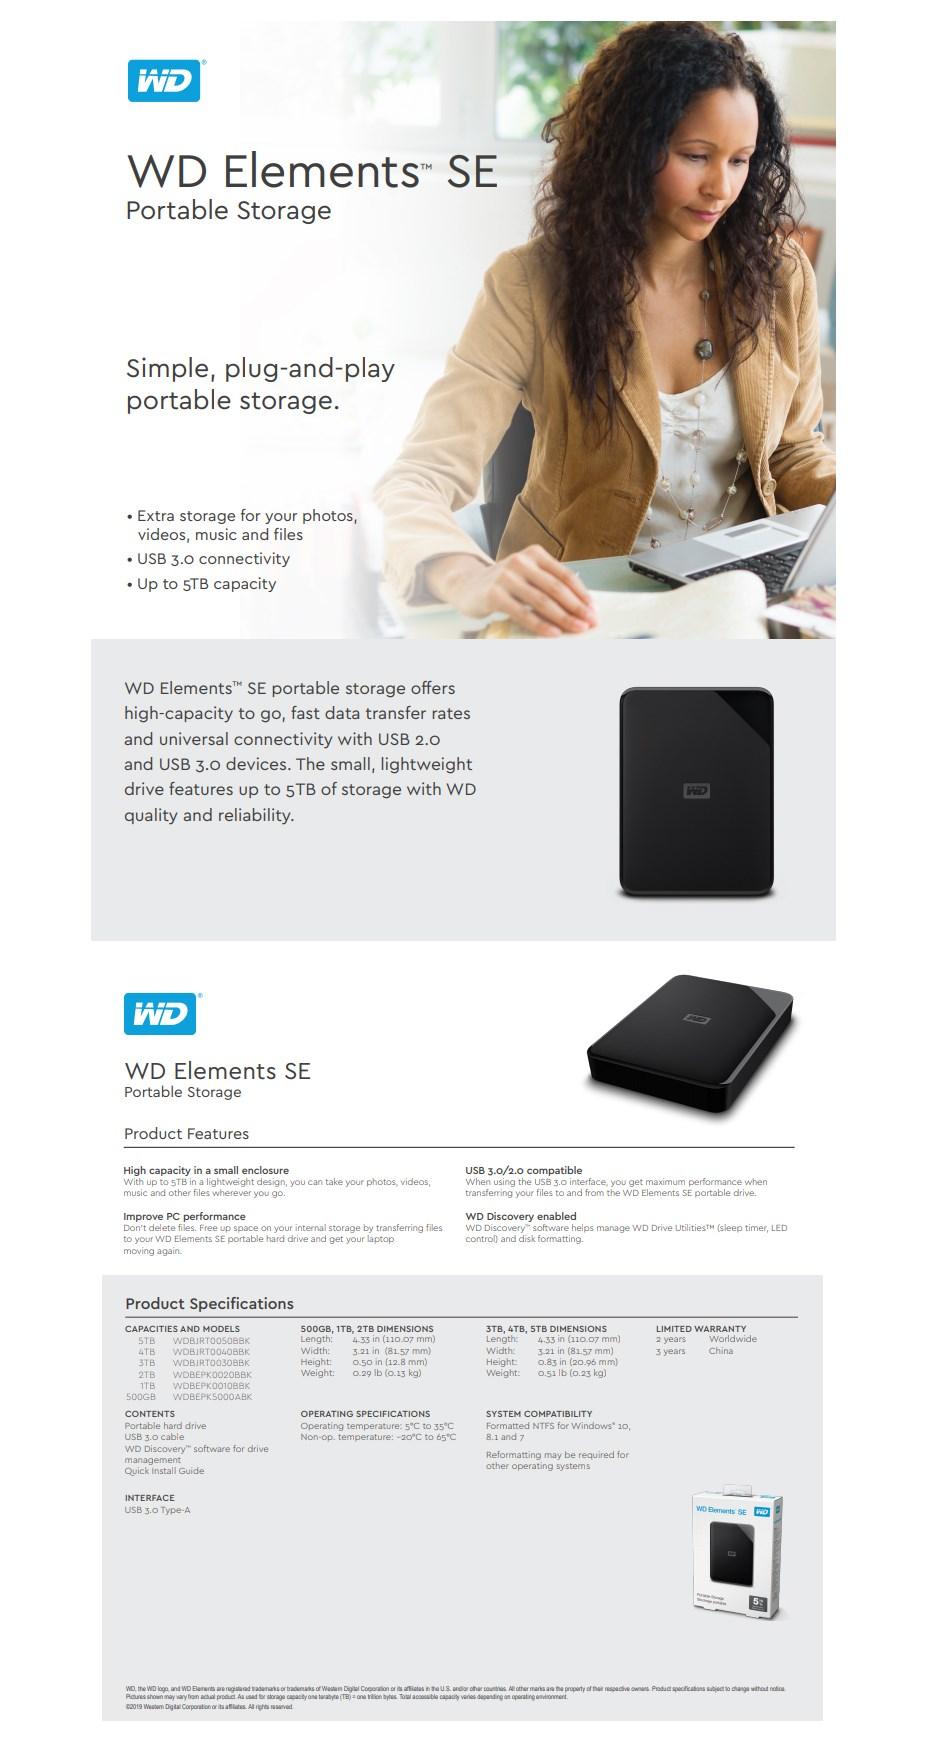 WD Elements SE 3TB USB 3.0 Portable External Hard Drive WDBU6Y0030BBK-WESN - Overview 1